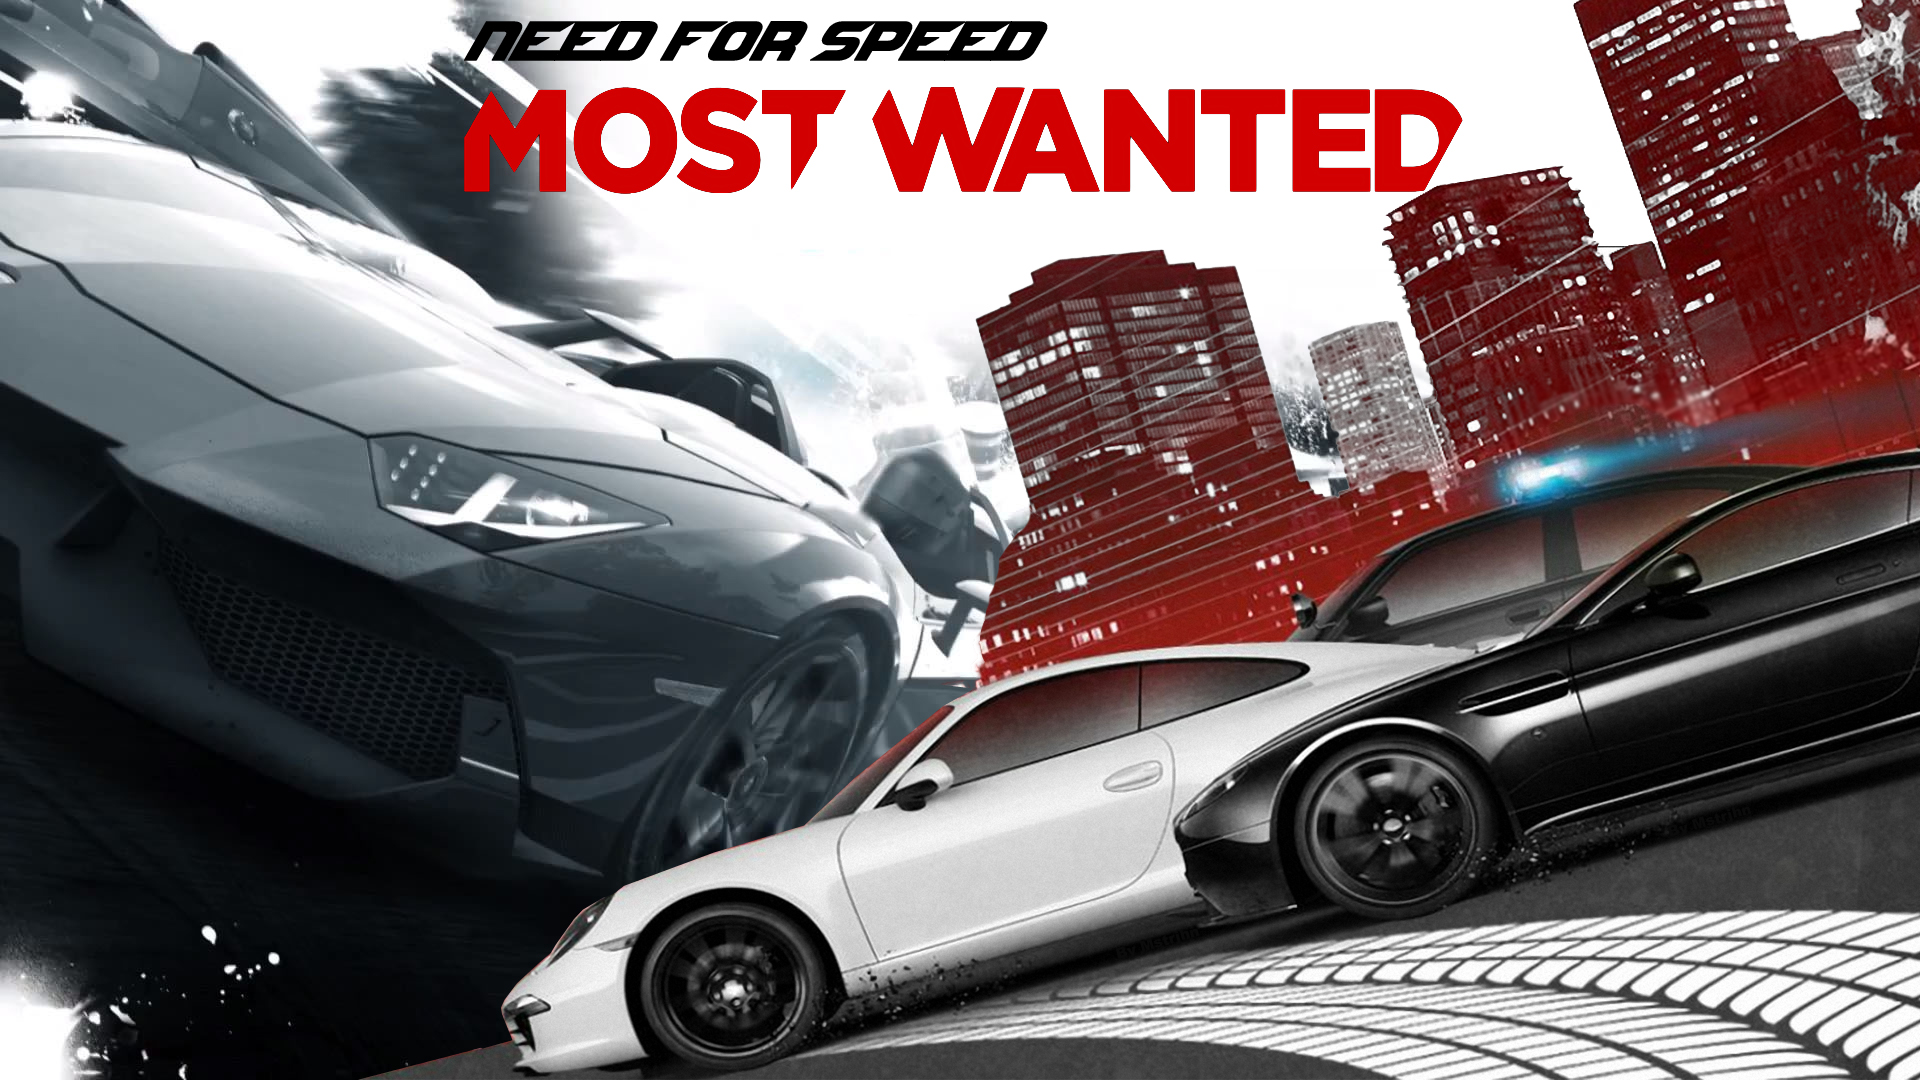 Need For Speed Most Wanted 2012 By Prashant12911 On Deviantart